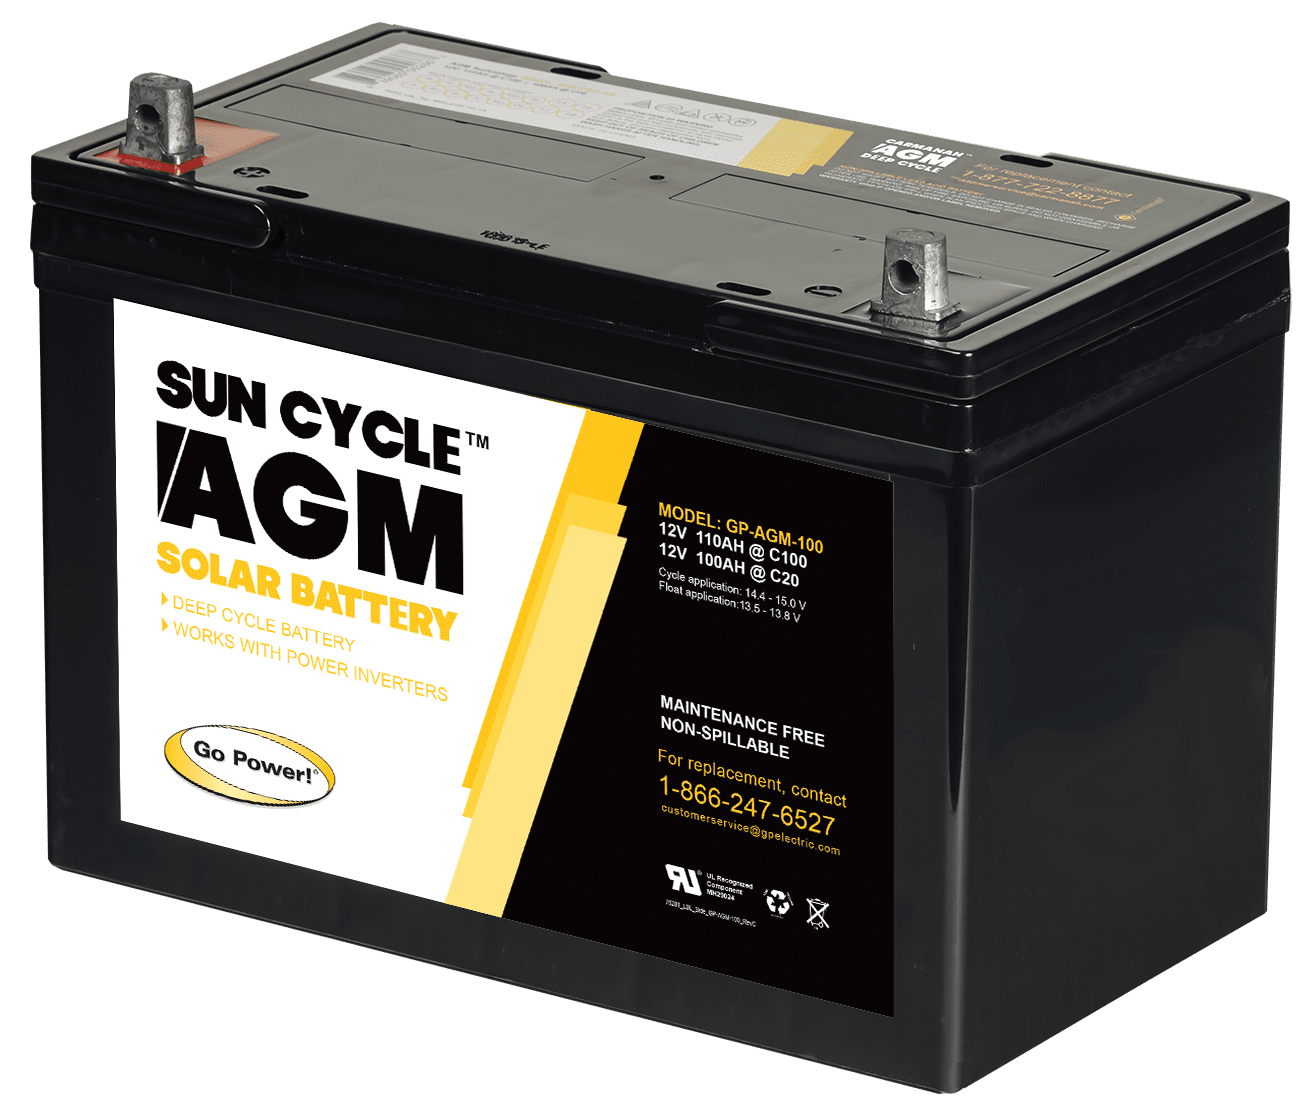 12 Volt Sun Cycle AGM Solar Battery | Go Power